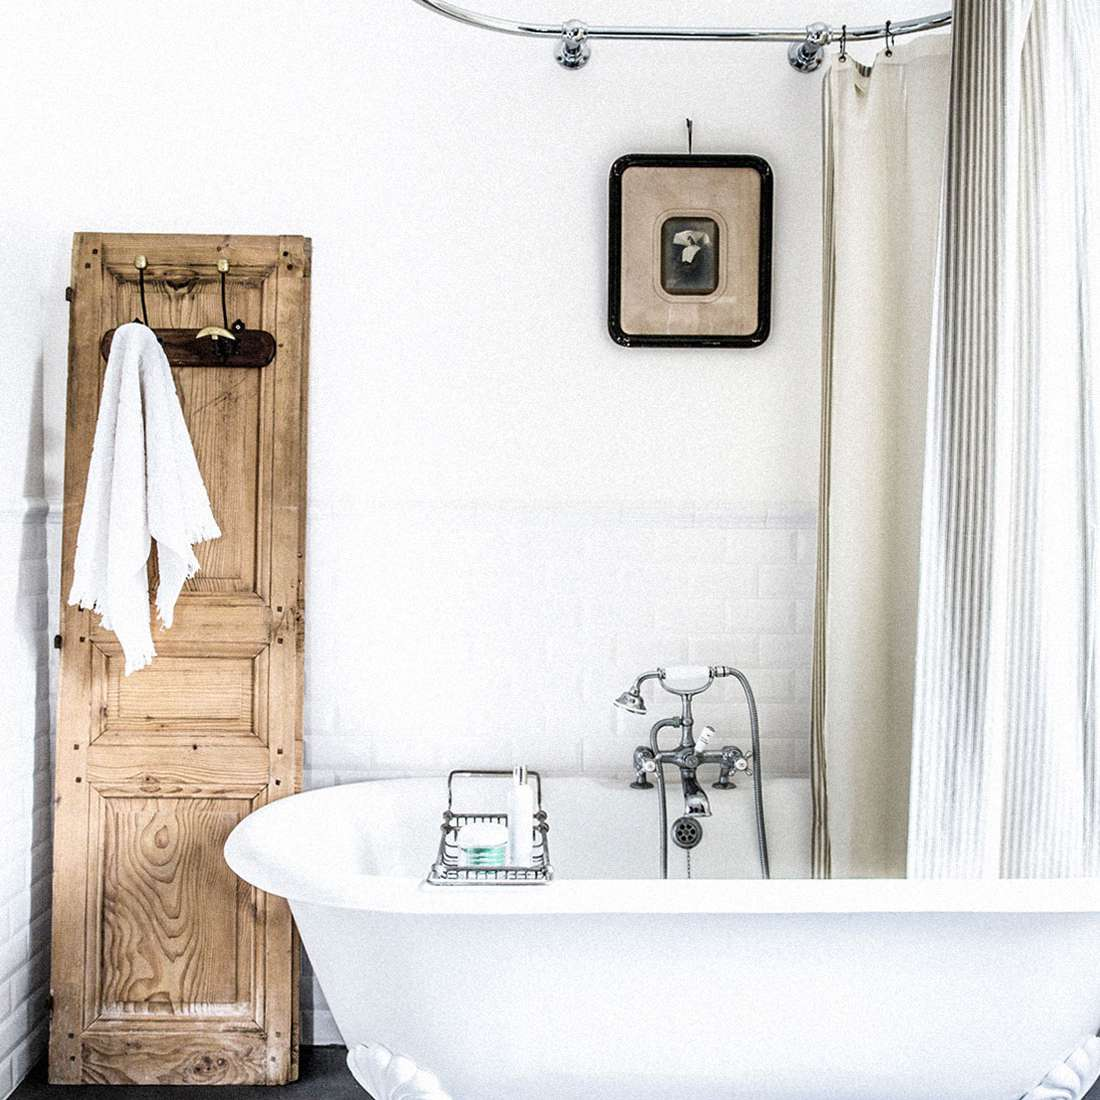 A bathroom with a clawfoot tub, a vintage photograph, and a towel rack made from an antique door